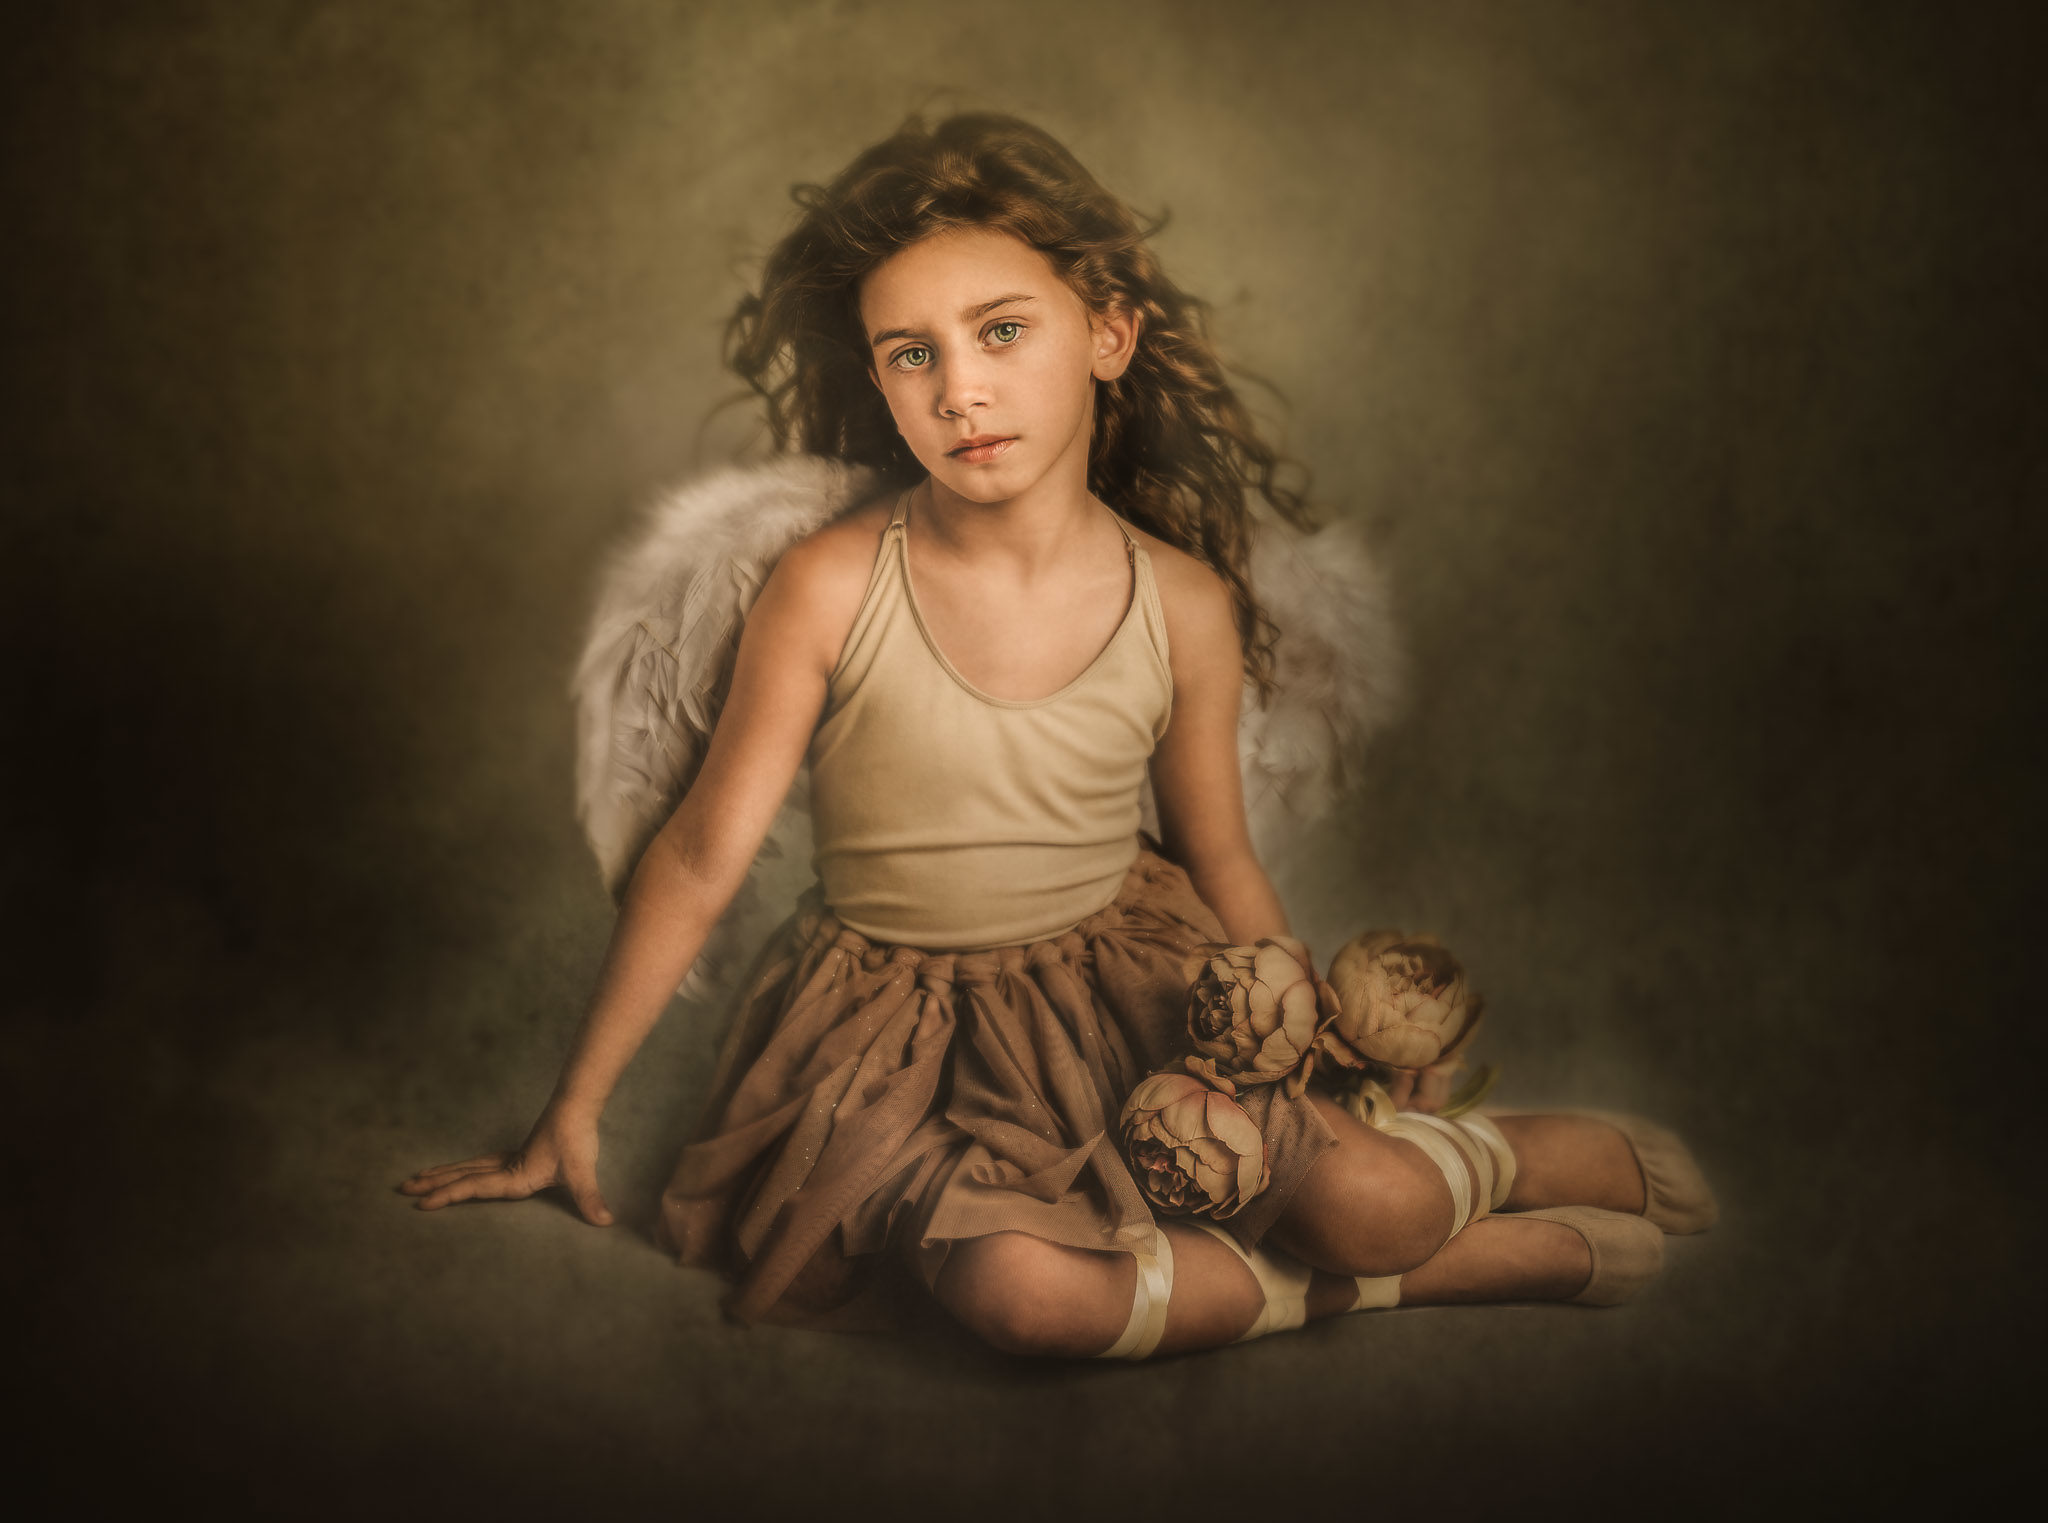 ALBA (7 AÑOS) - LITTLE ANGELS 2018